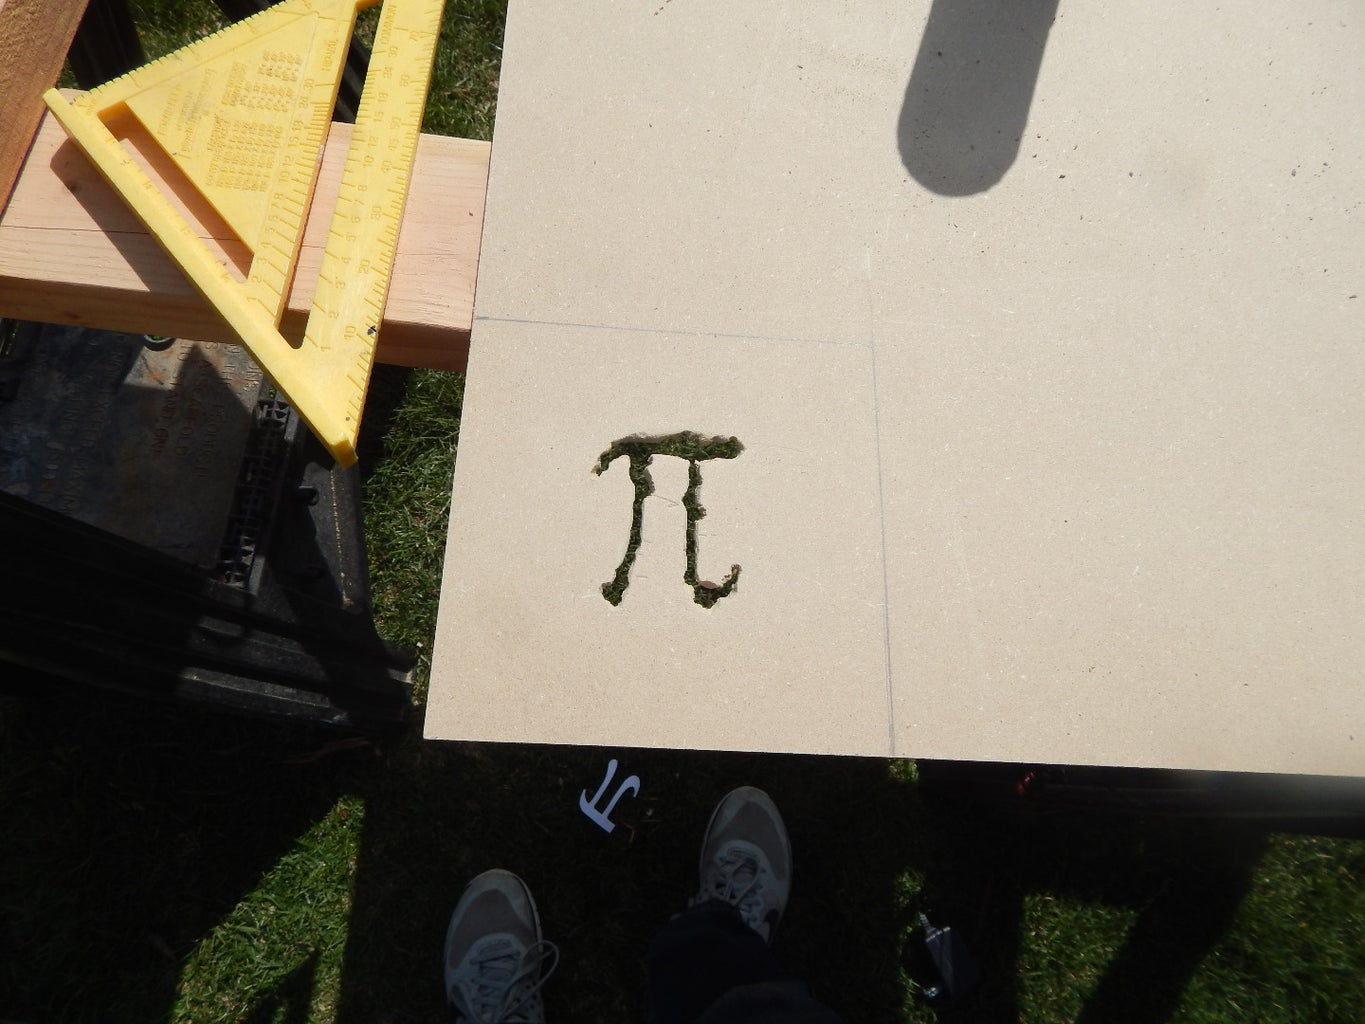 Step 1: the Box: Top and Sides With Pi Emblem